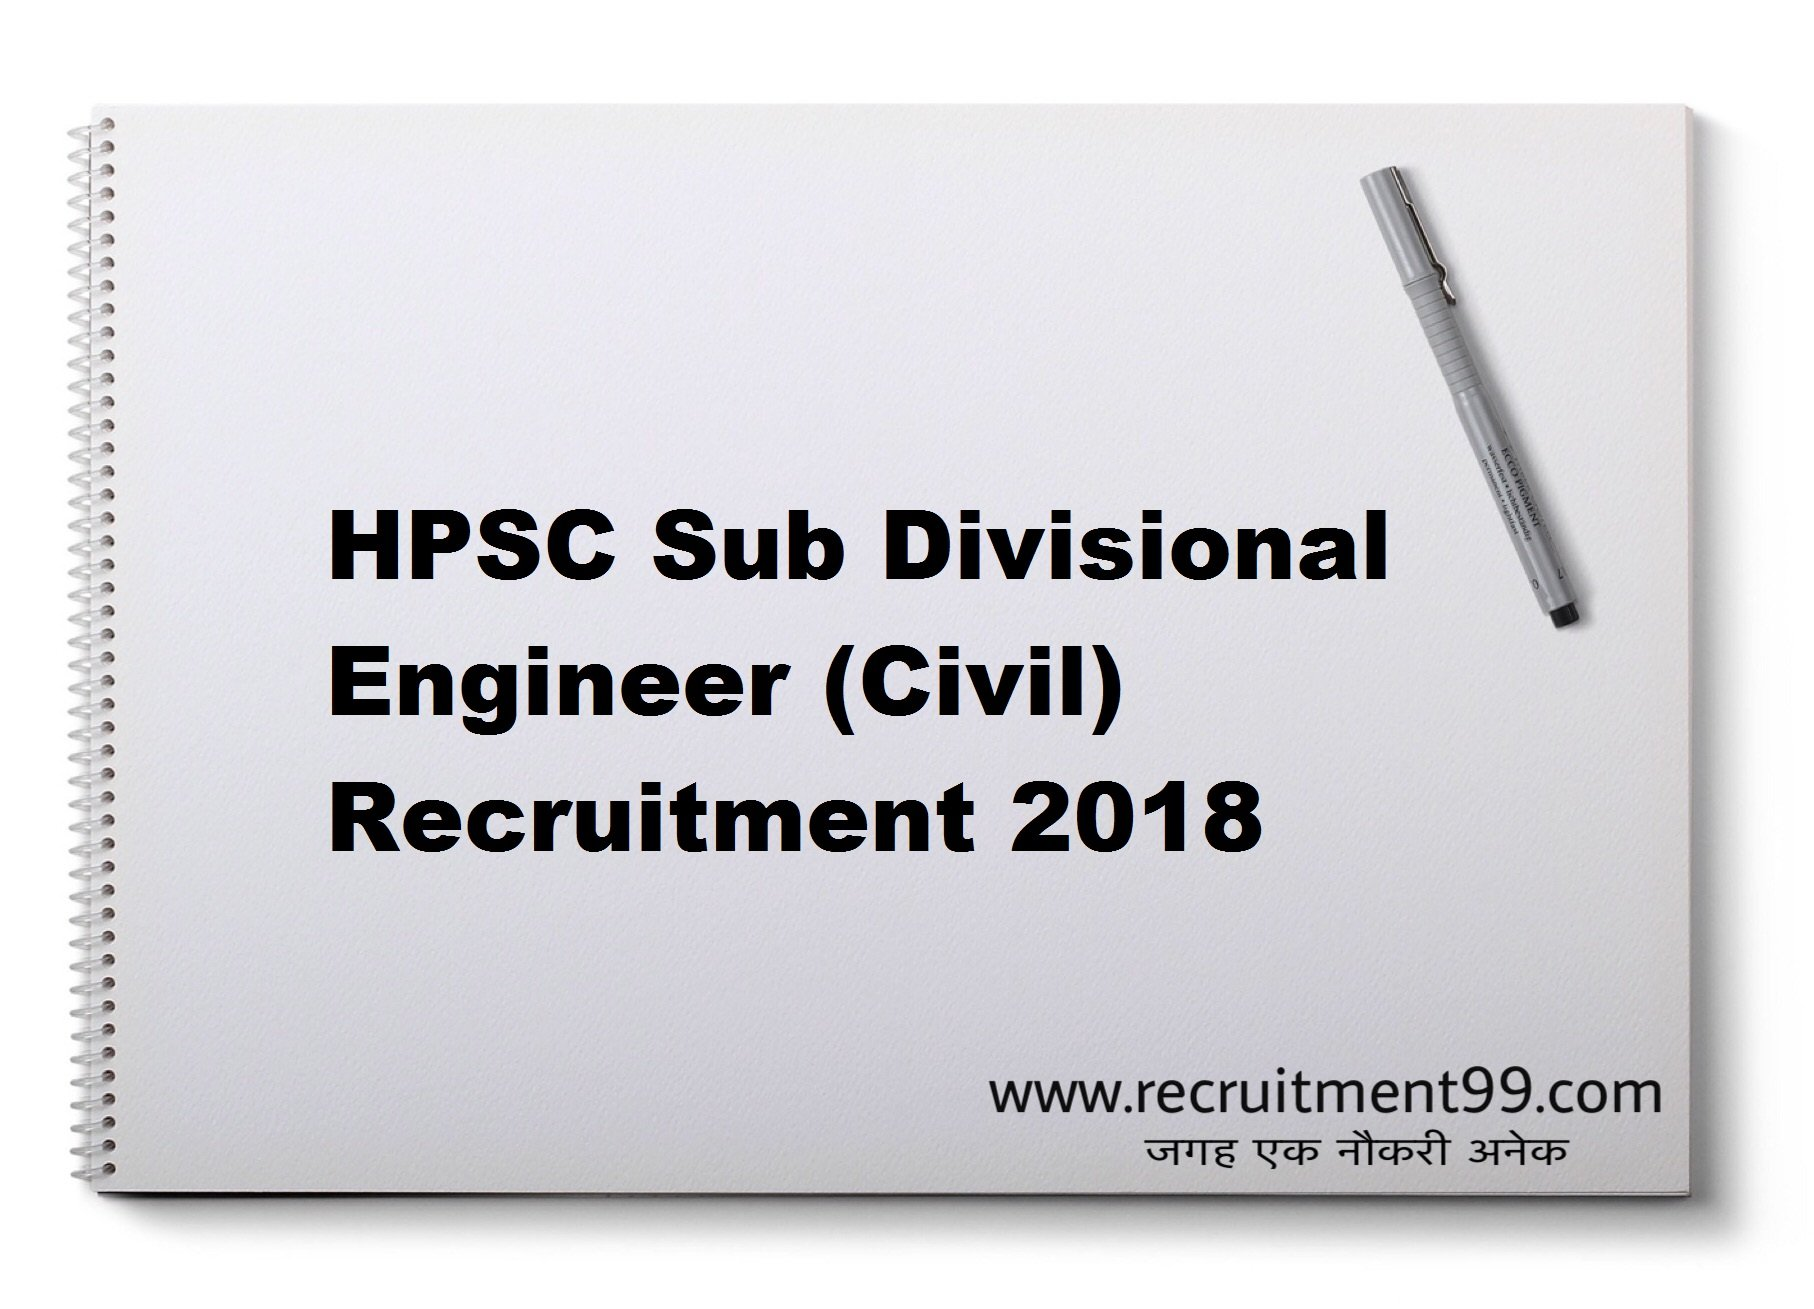 HPSC Sub Divisional Engineer (Civil) Recruitment Admit Card Result 2018